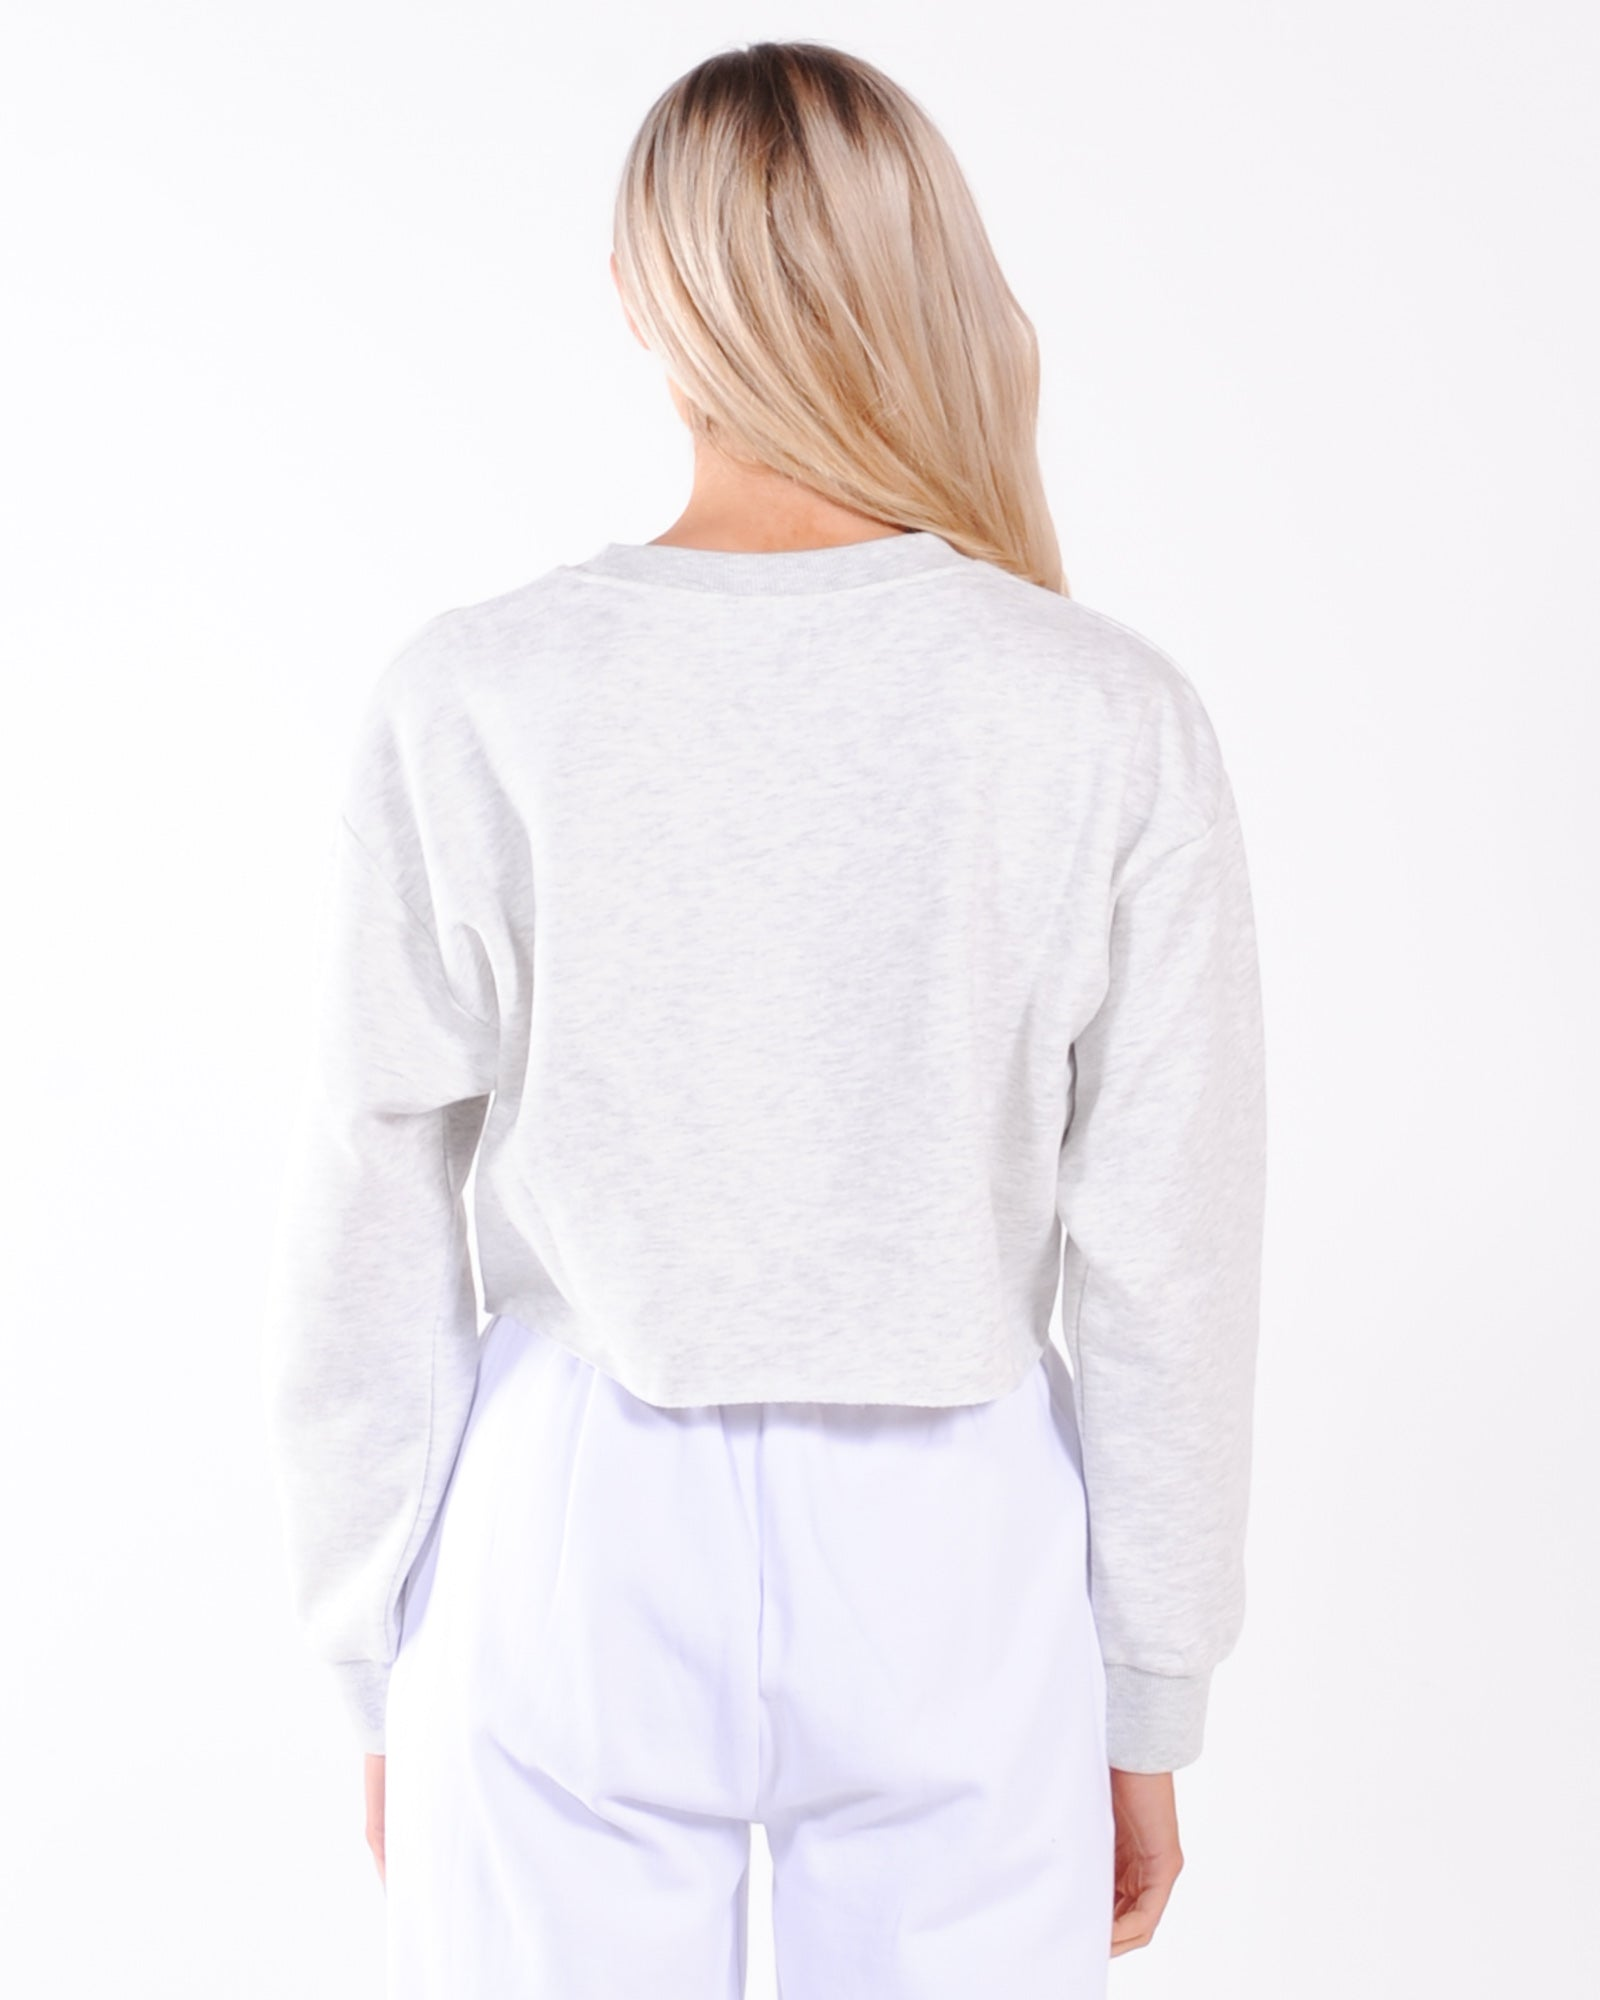 Nude Lucy Carter Crop Crew Sweat - Snow Marle